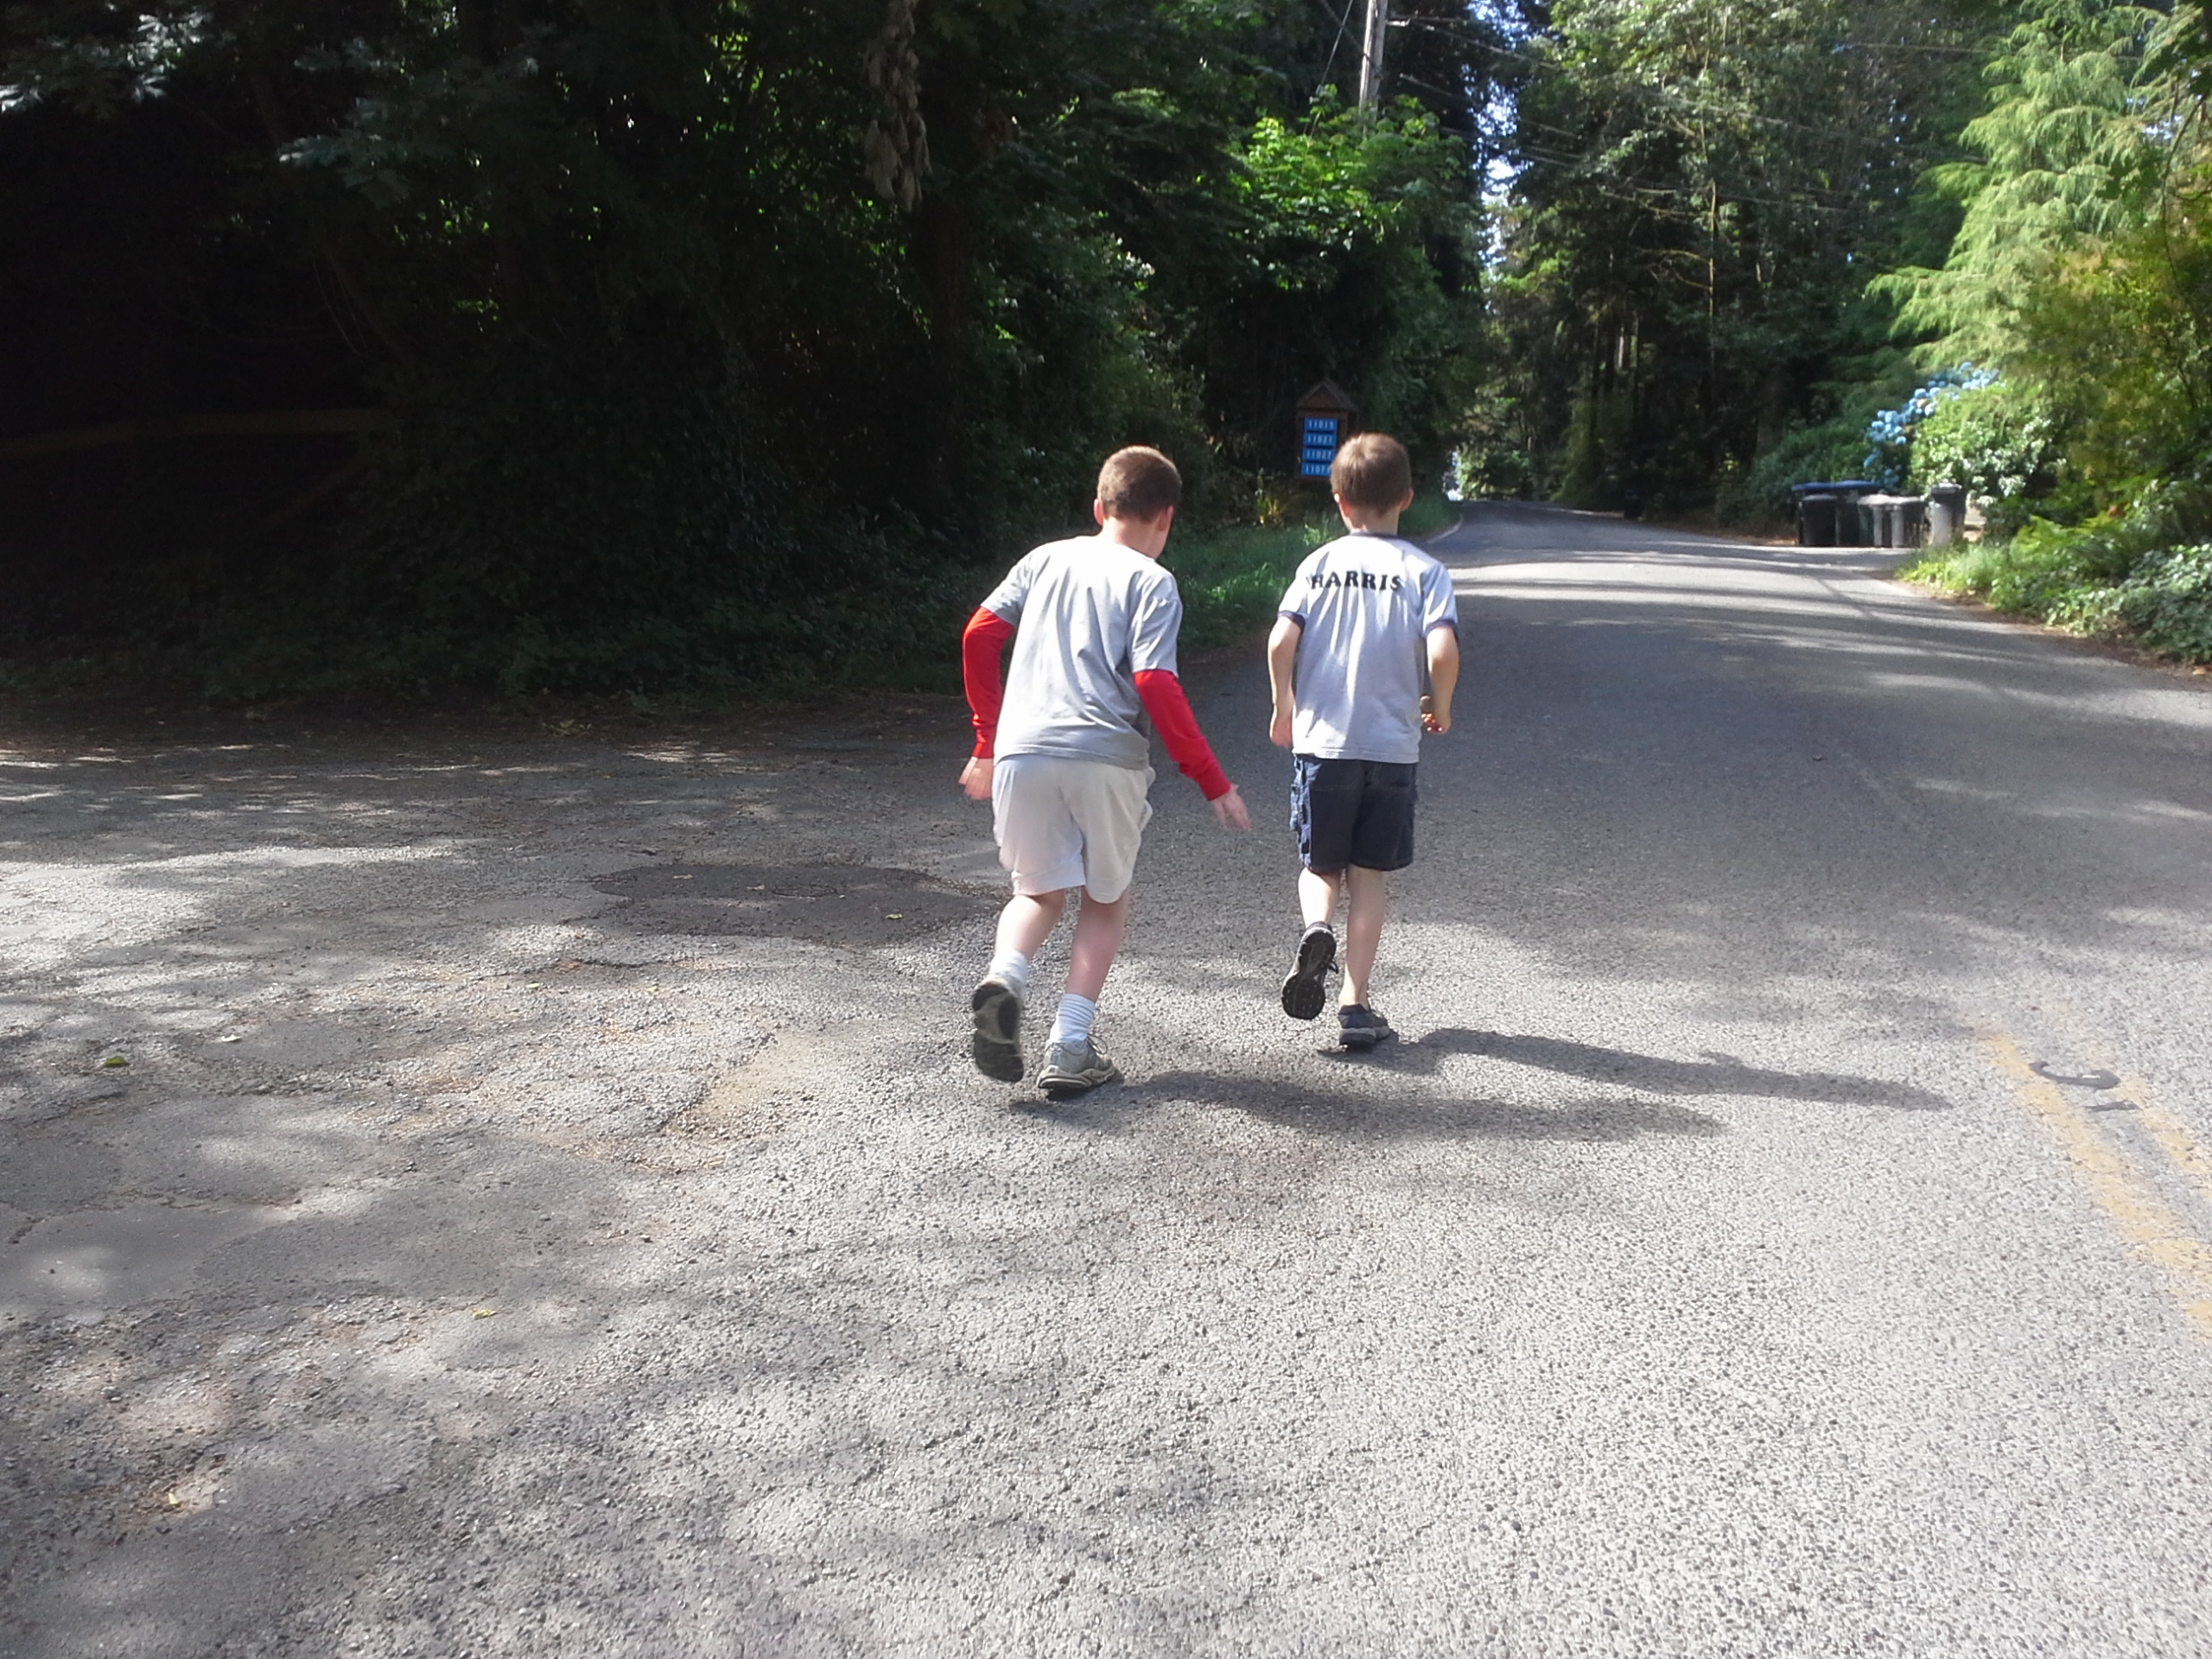 The guys out jogging.